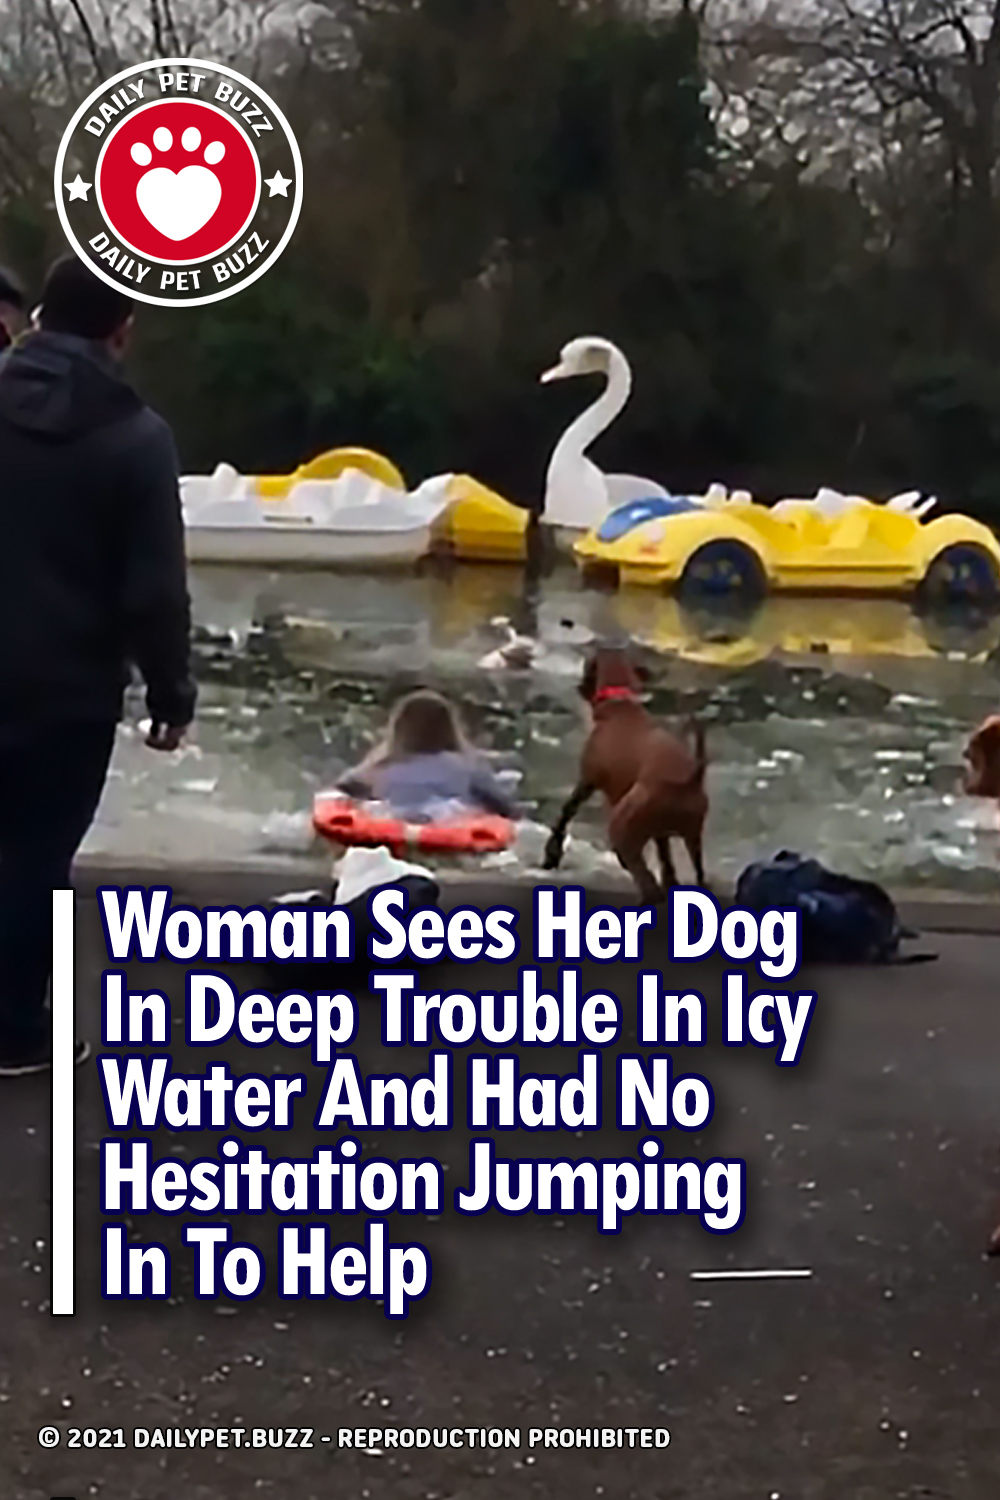 Woman Sees Her Dog In Deep Trouble In Icy Water And Had No Hesitation Jumping In To Help